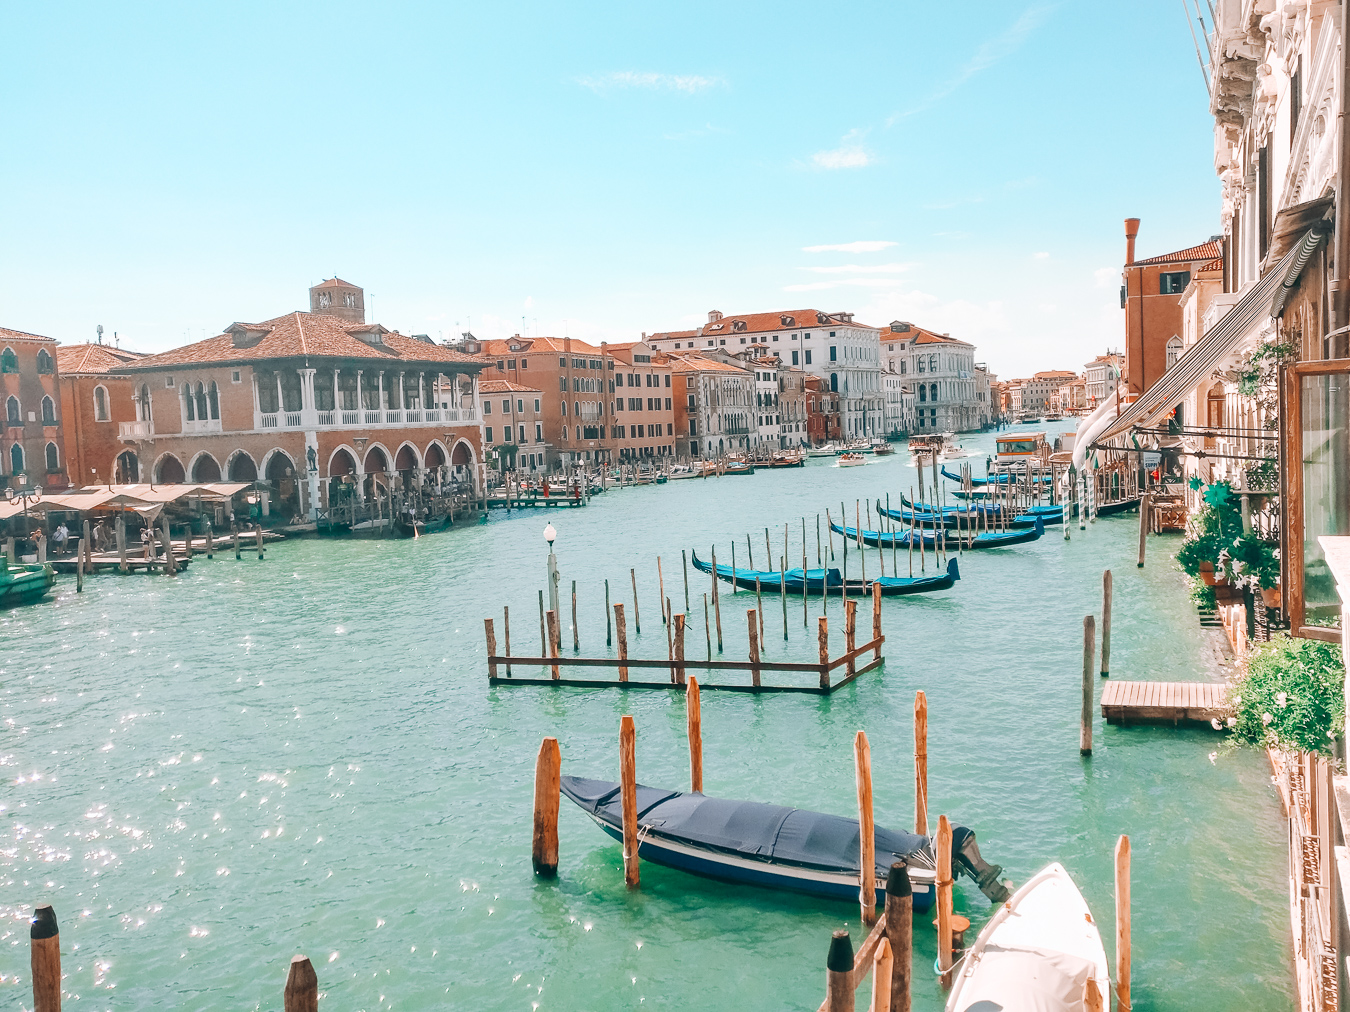 View of gondolas, buildings and water in Venice